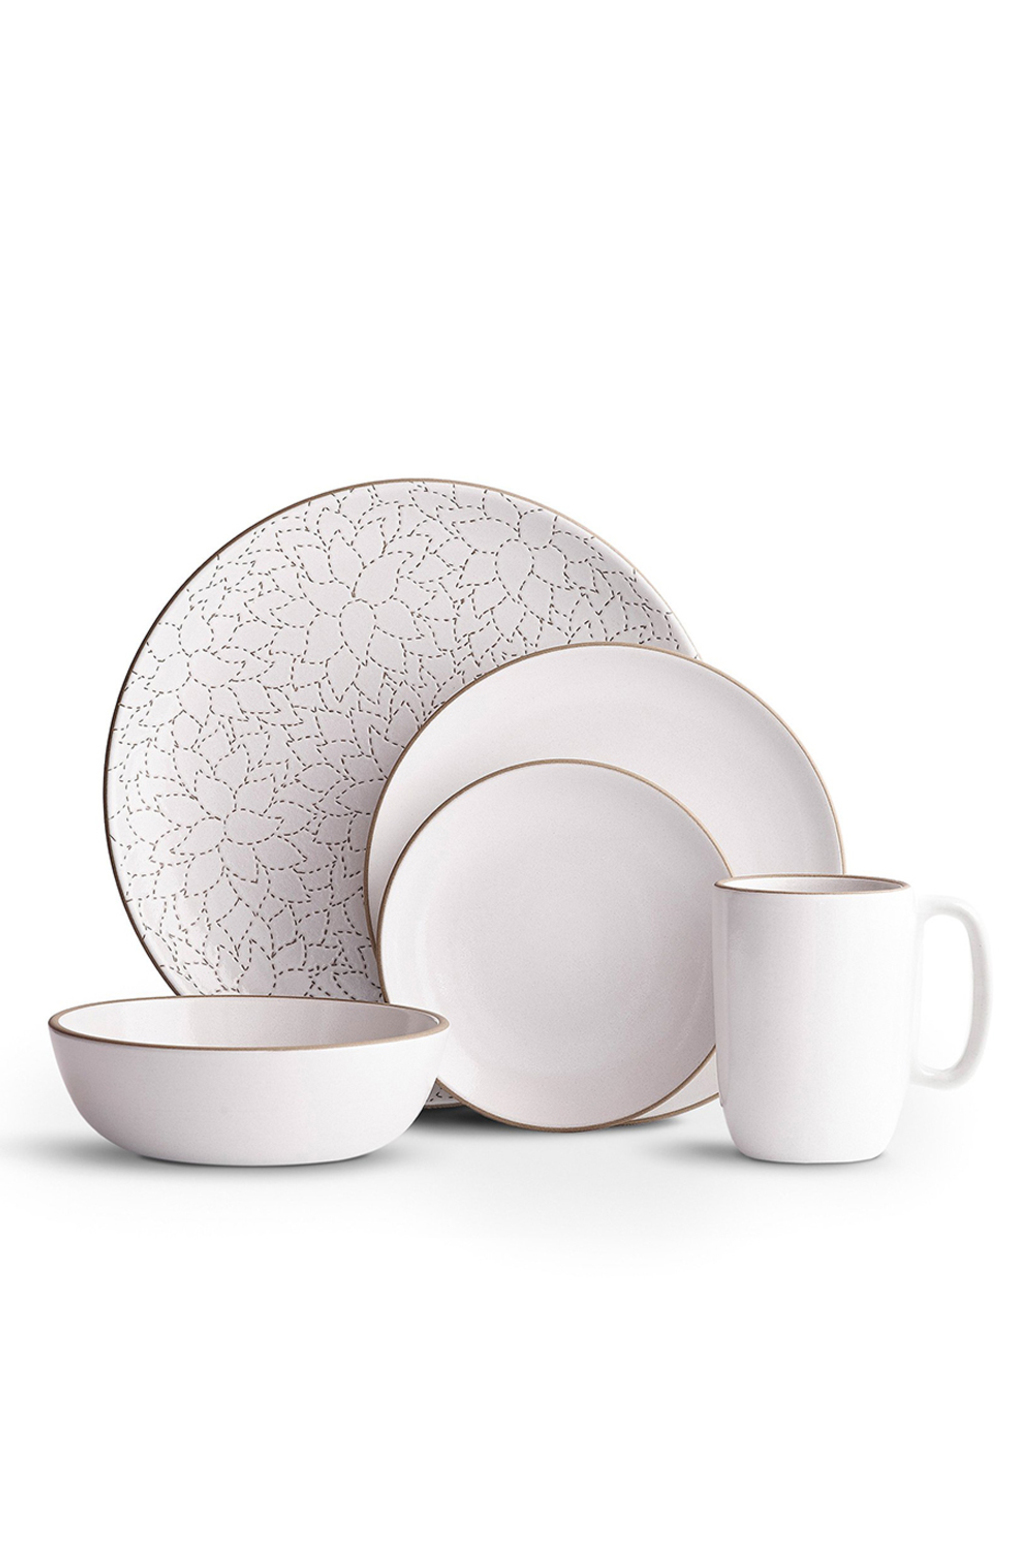 Camellia opaque white dinnerware set   heath ac 104   heath ceramics